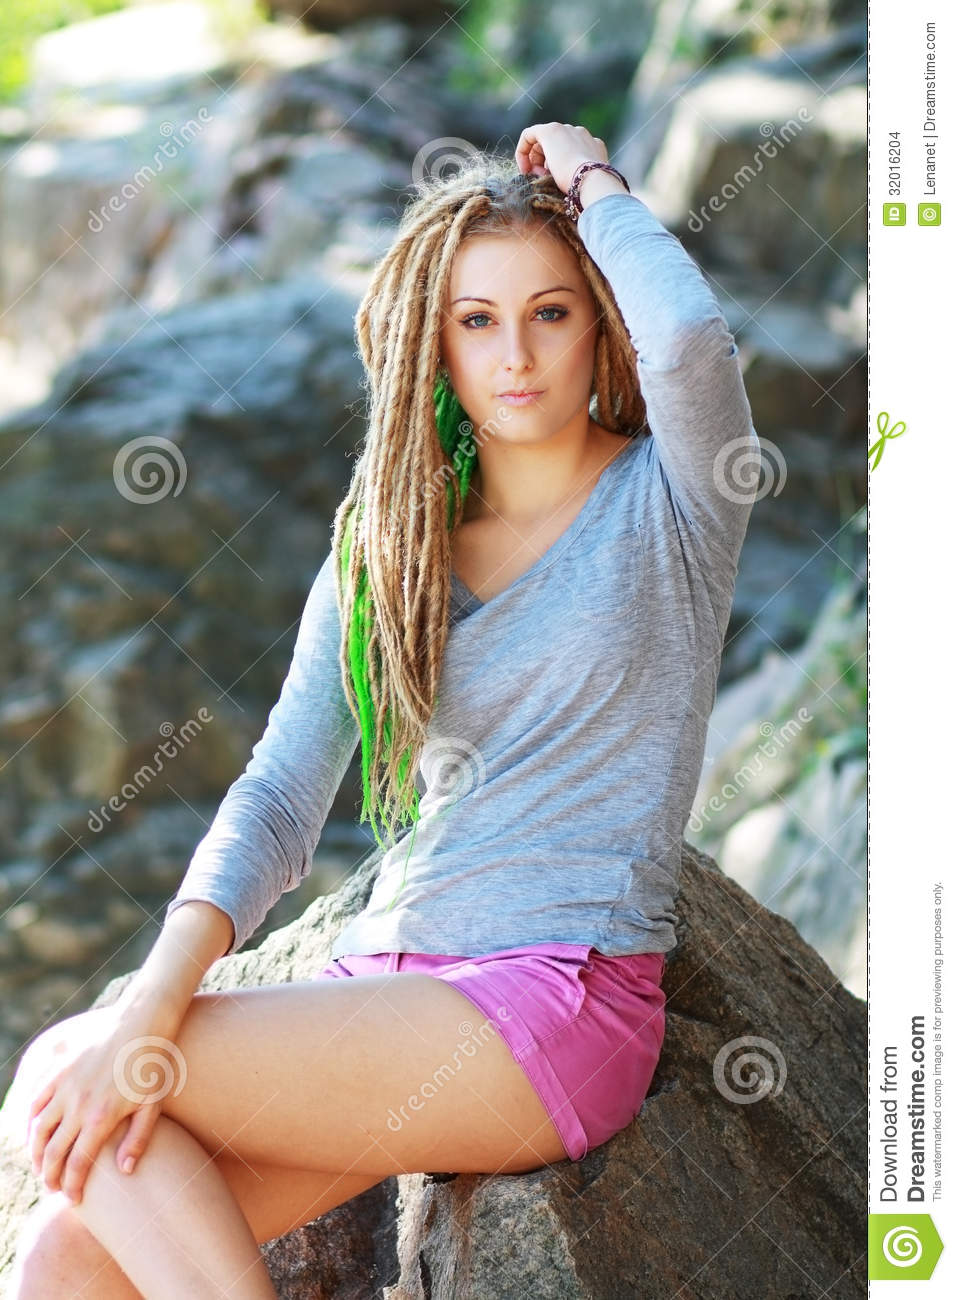 hipster girl stock images